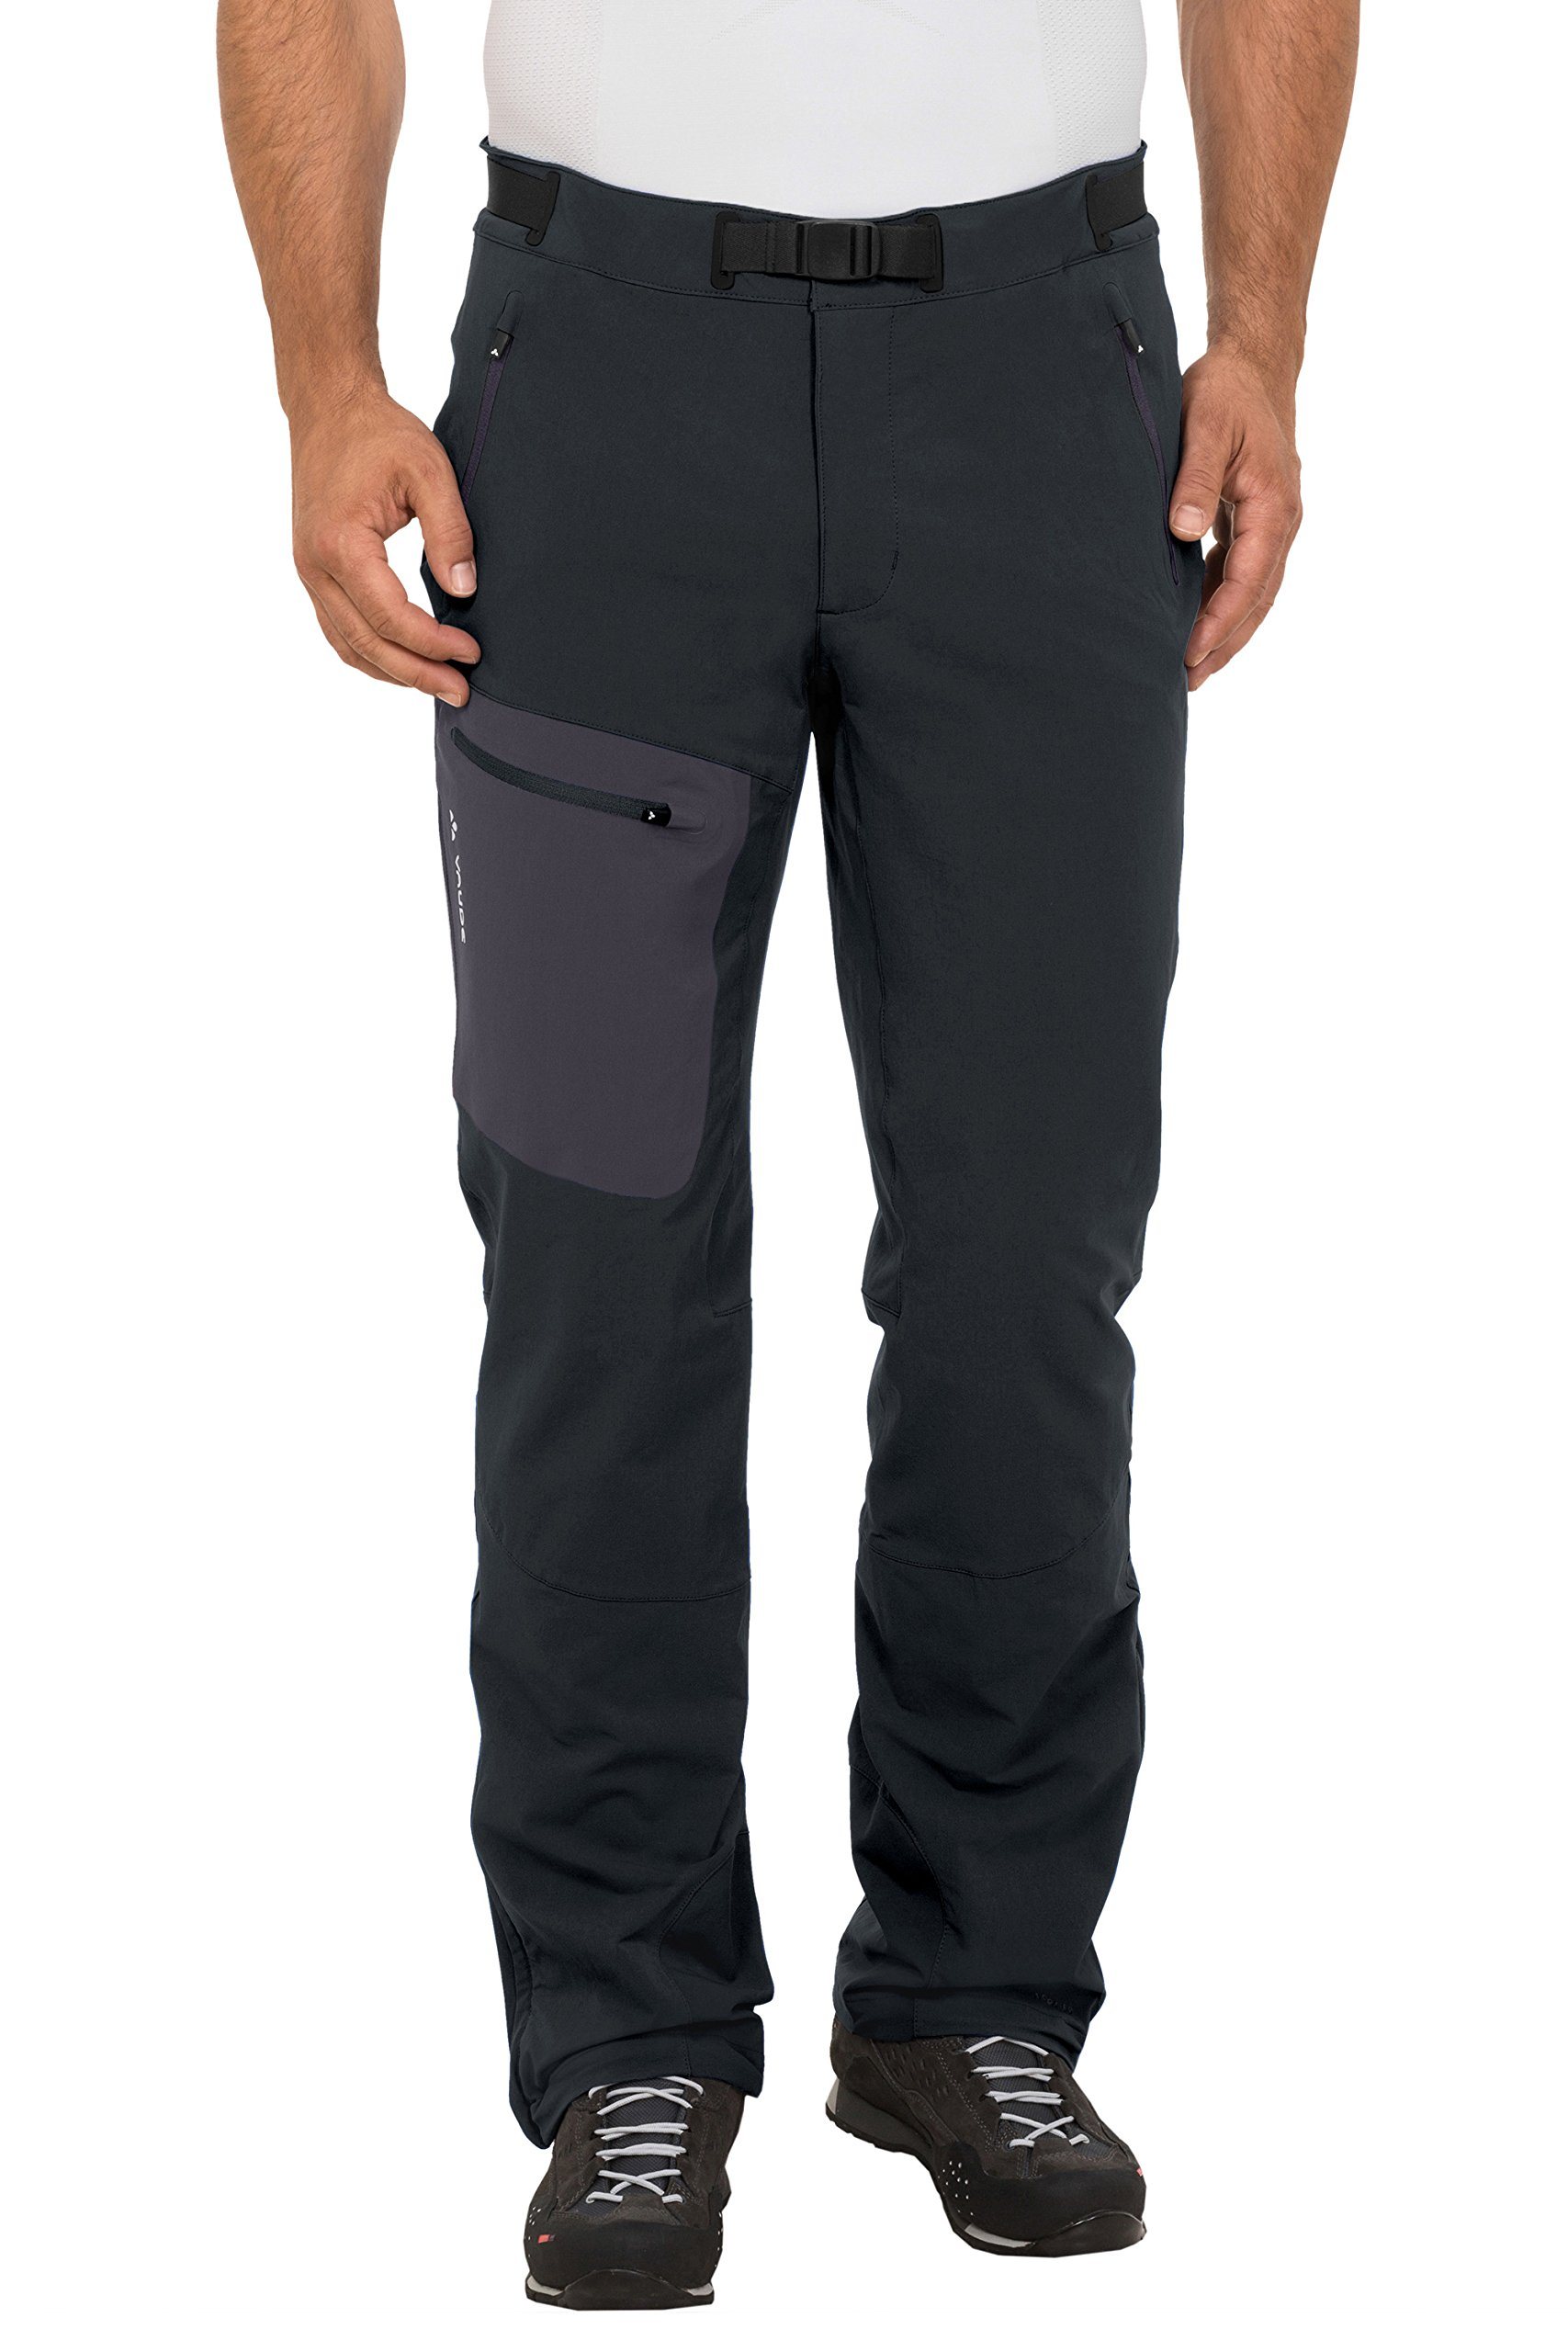 VAUDE Men's Bail II Pants, Black, Size 46